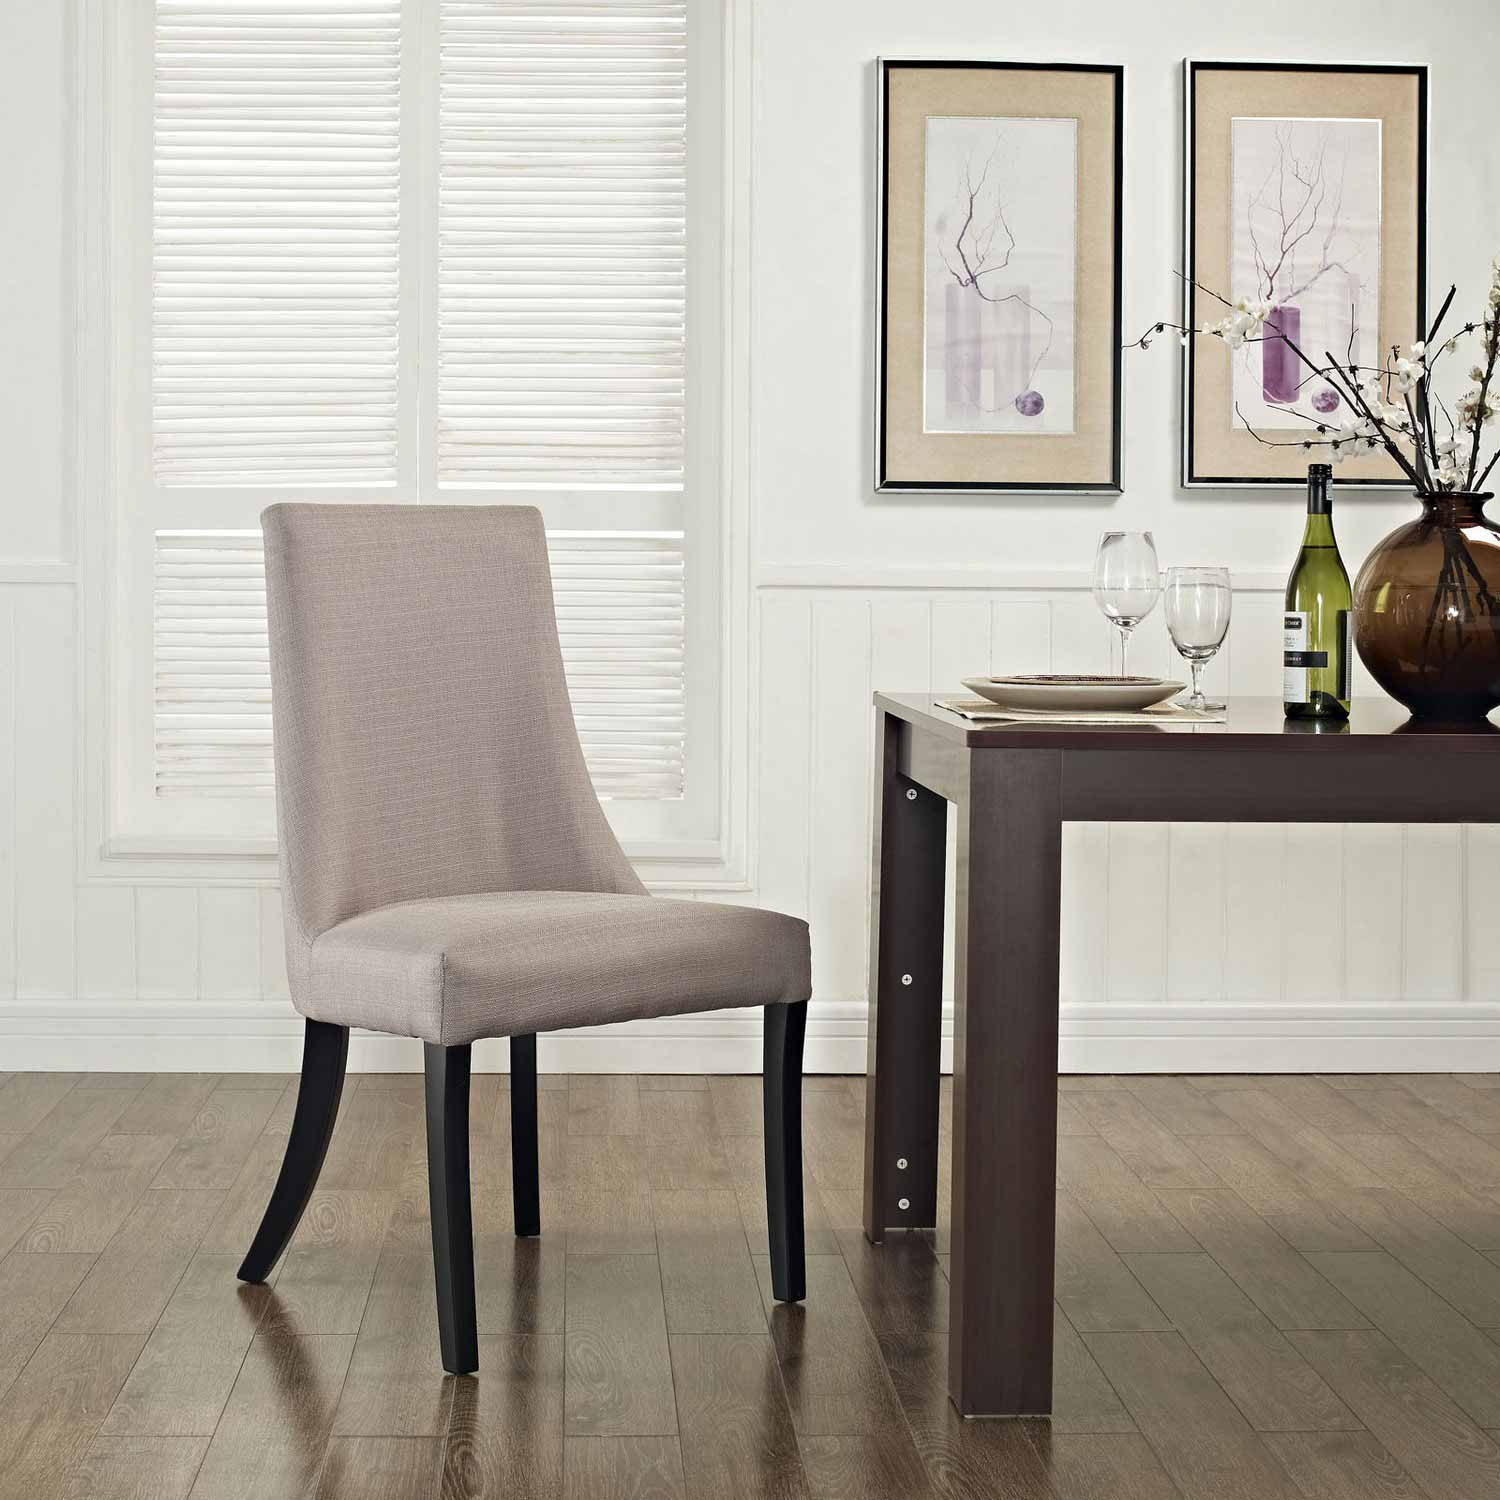 Modway Reverie Dining Side Chair - Beige